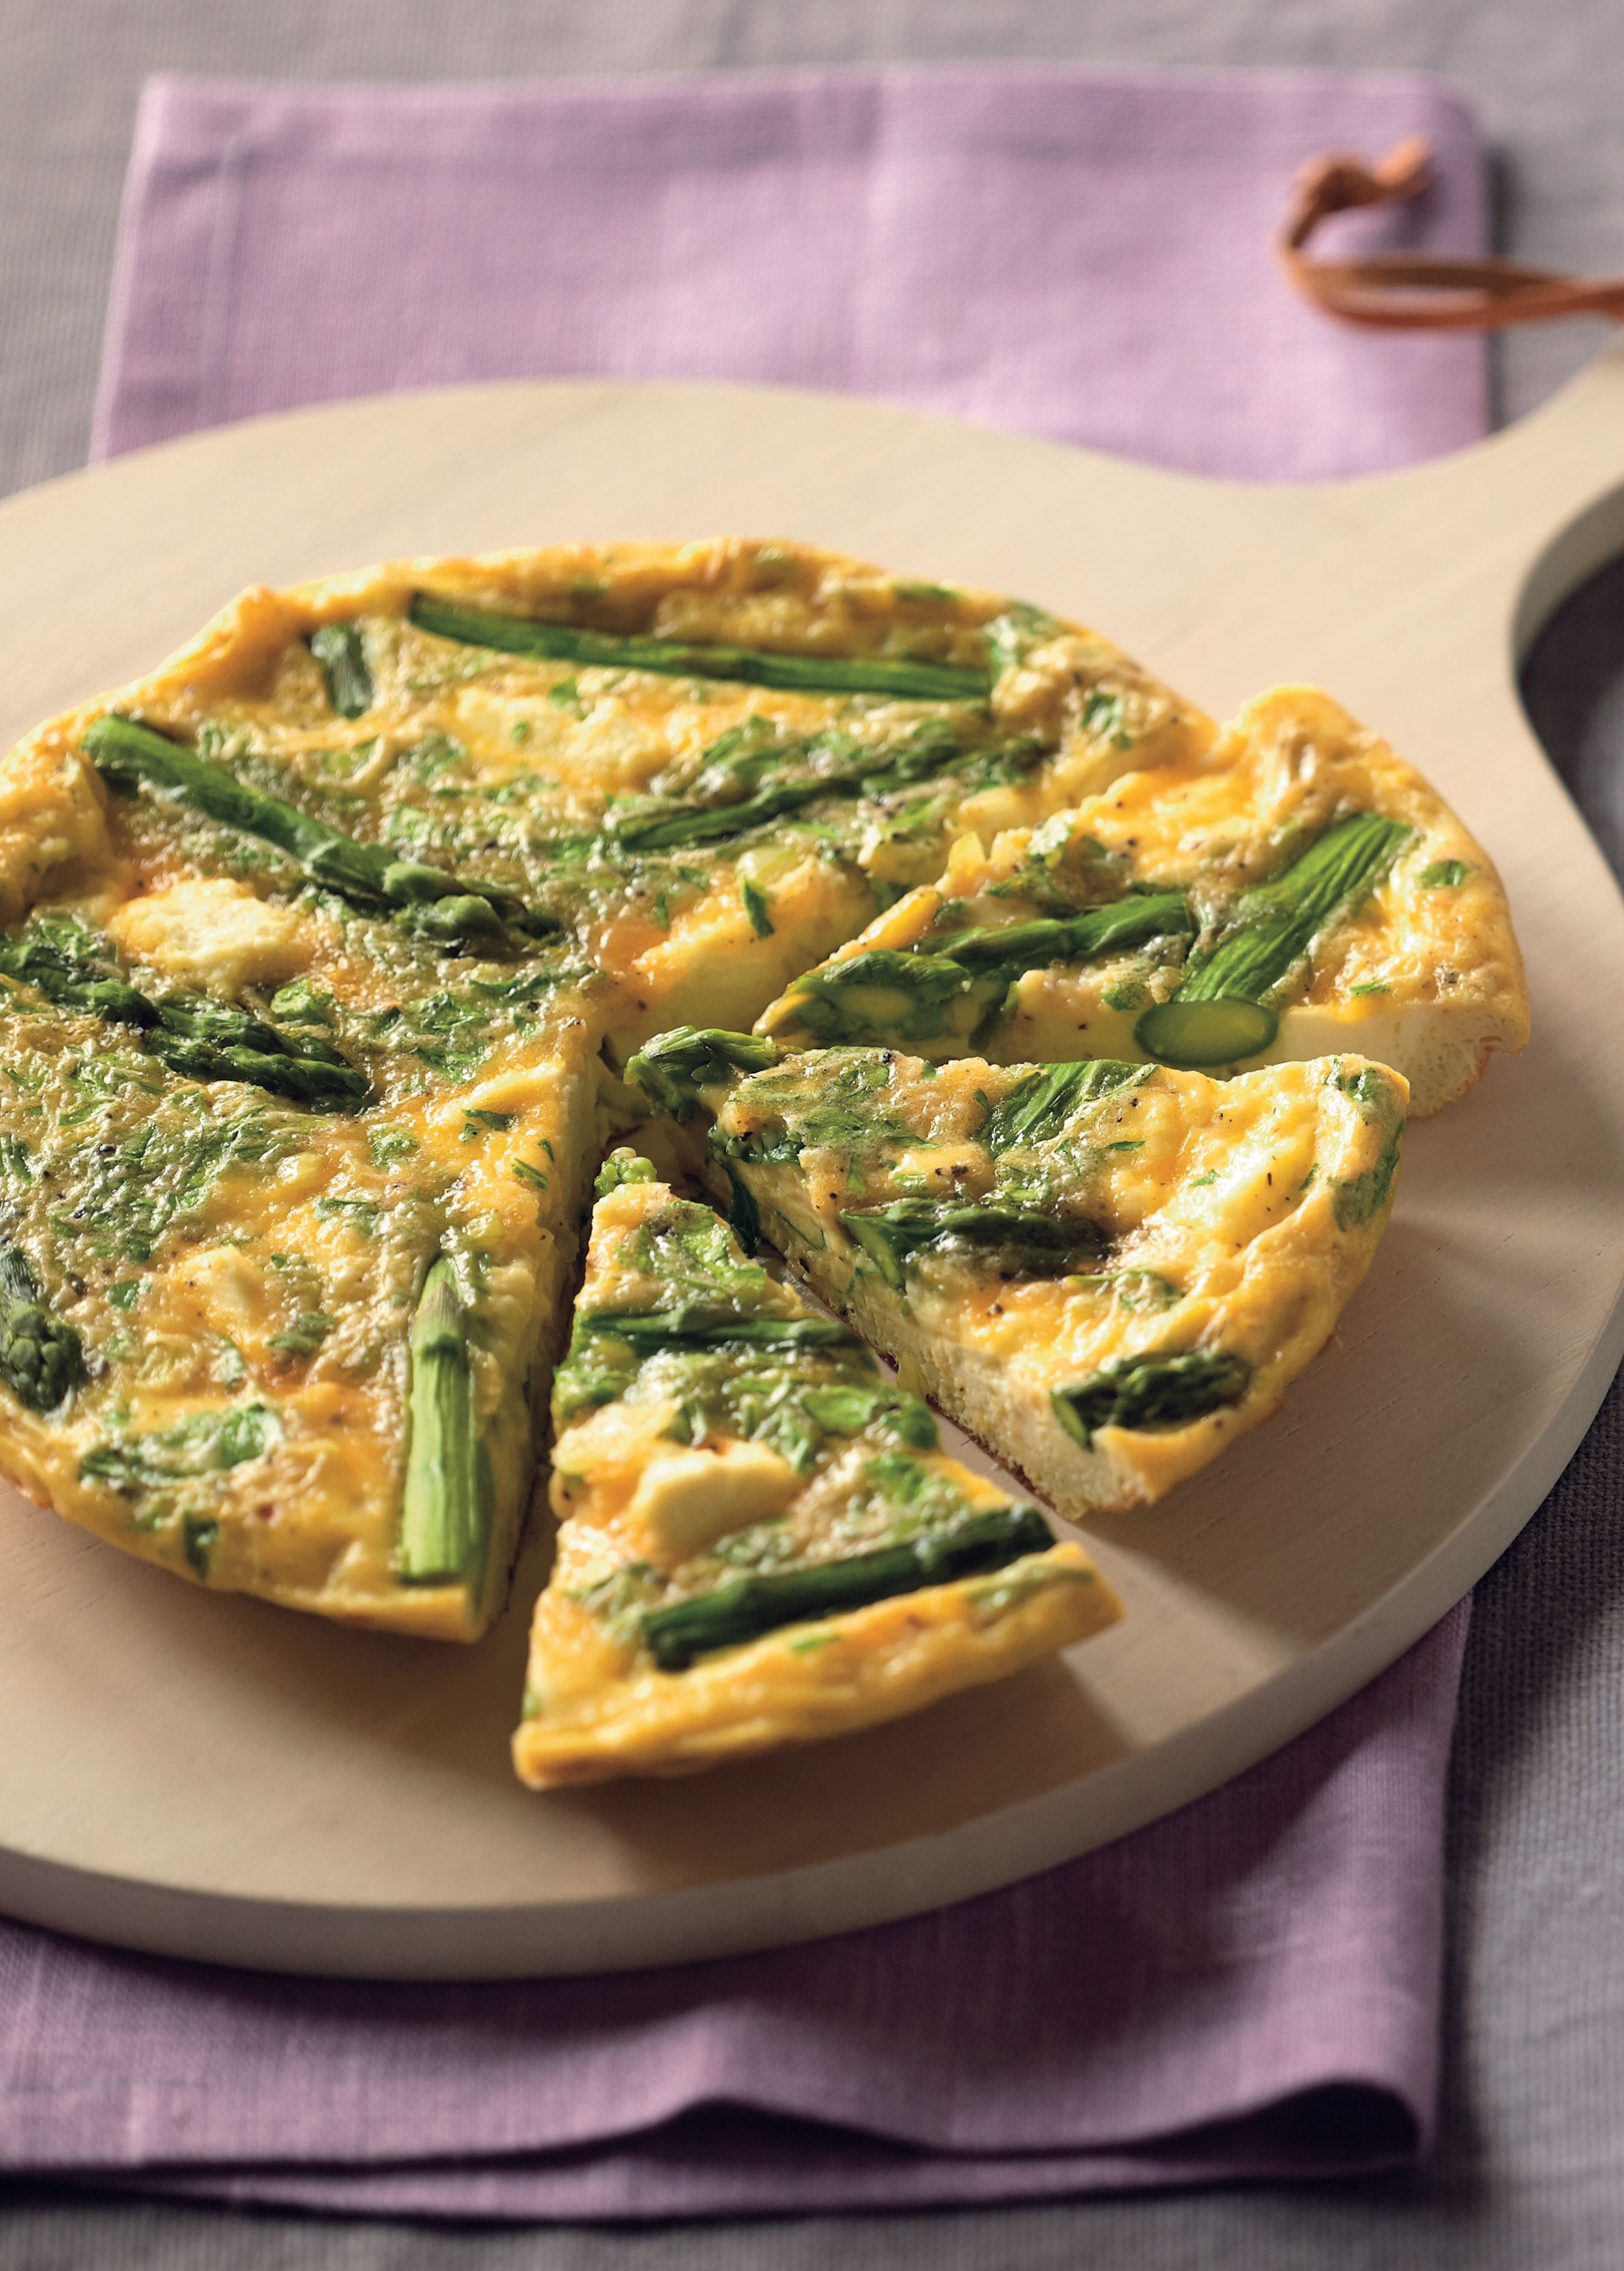 Asparagus and ricotta frittata